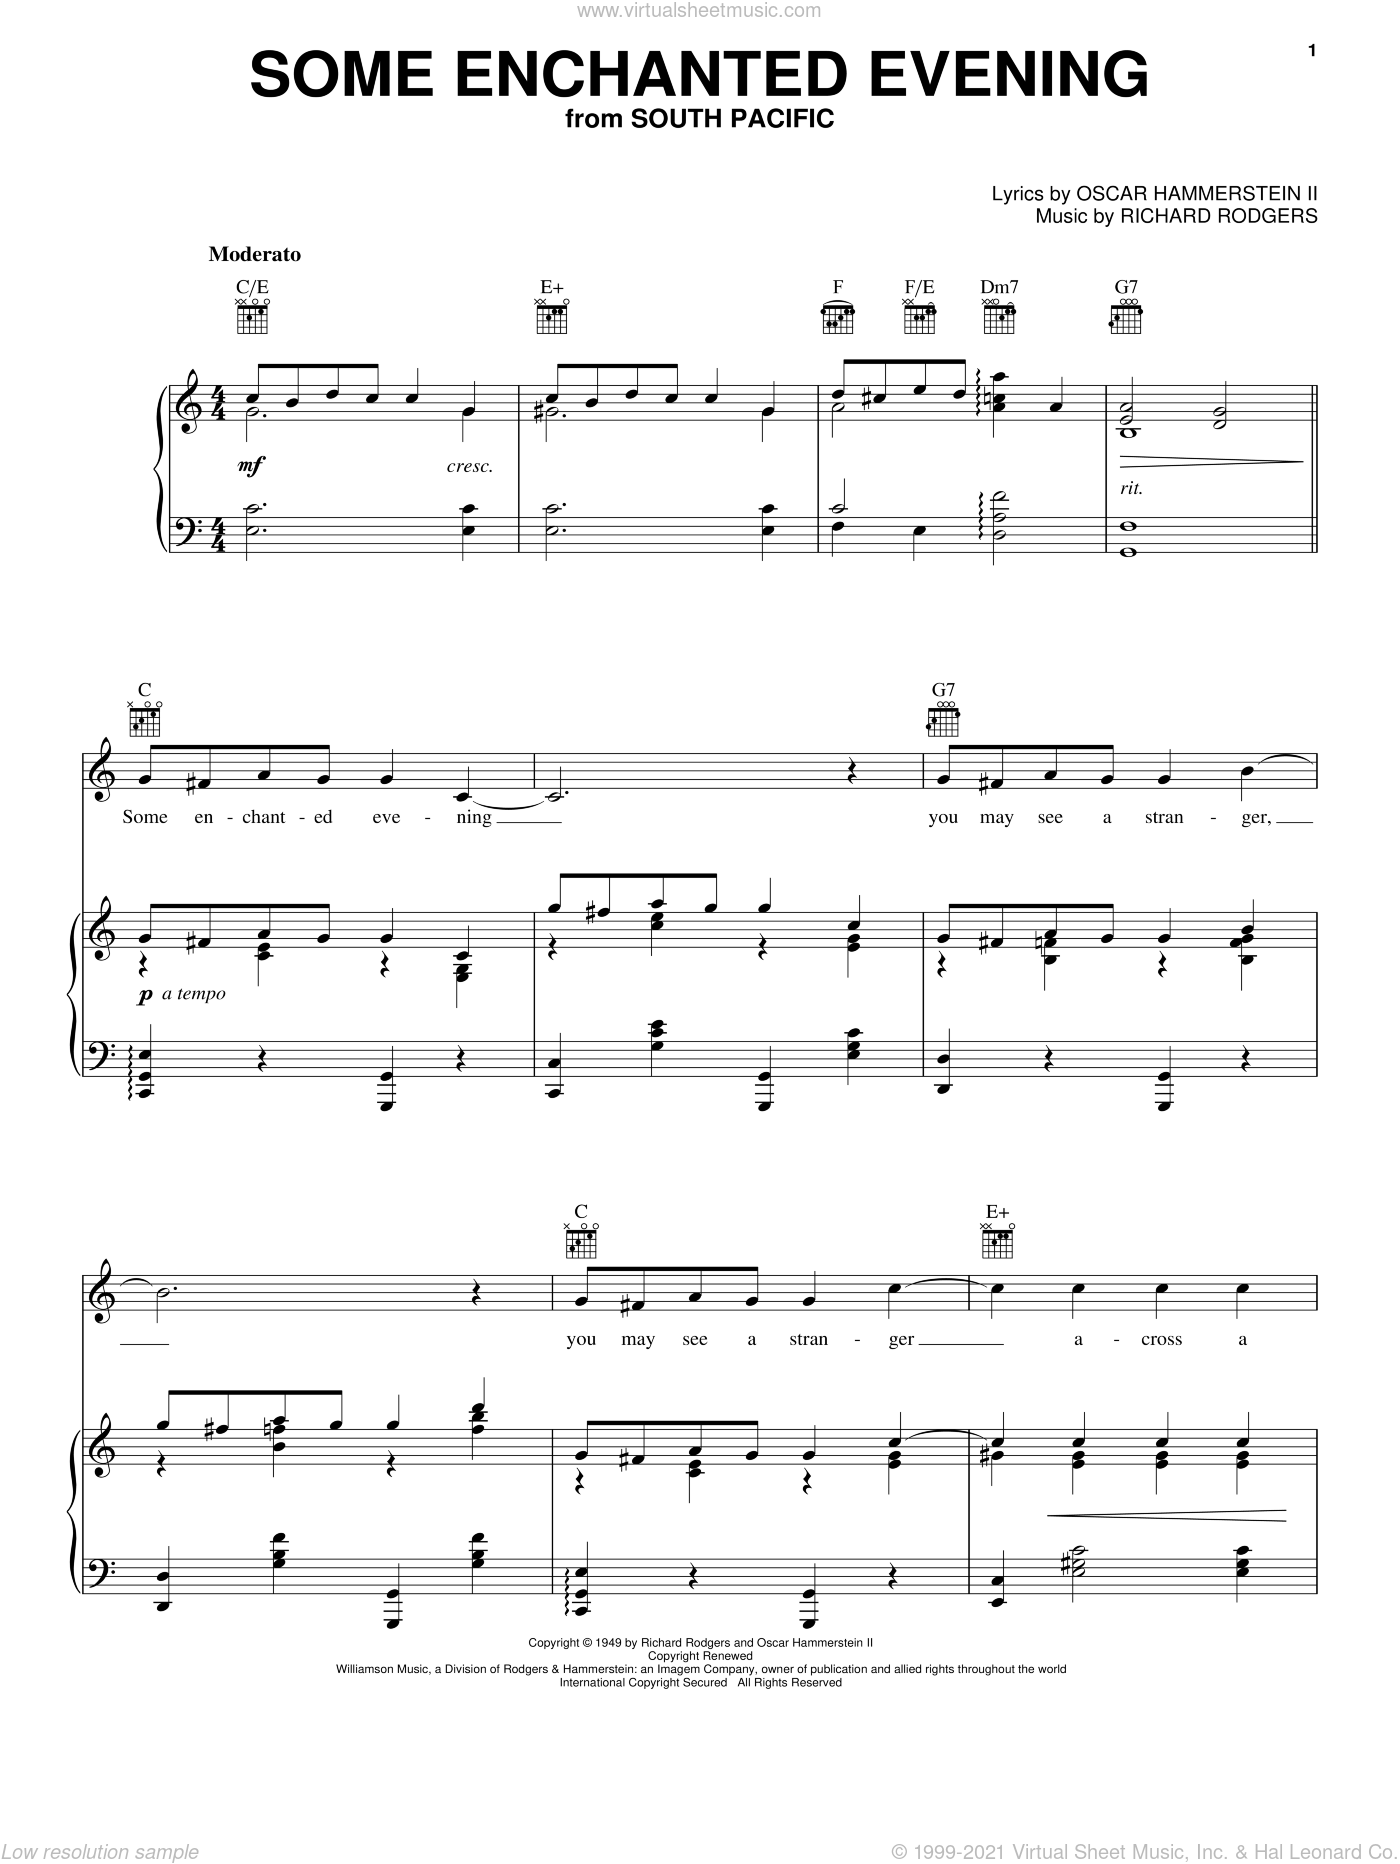 Some Enchanted Evening sheet music for voice, piano or guitar by Rodgers & Hammerstein, South Pacific (Musical), Oscar II Hammerstein and Richard Rodgers, intermediate skill level